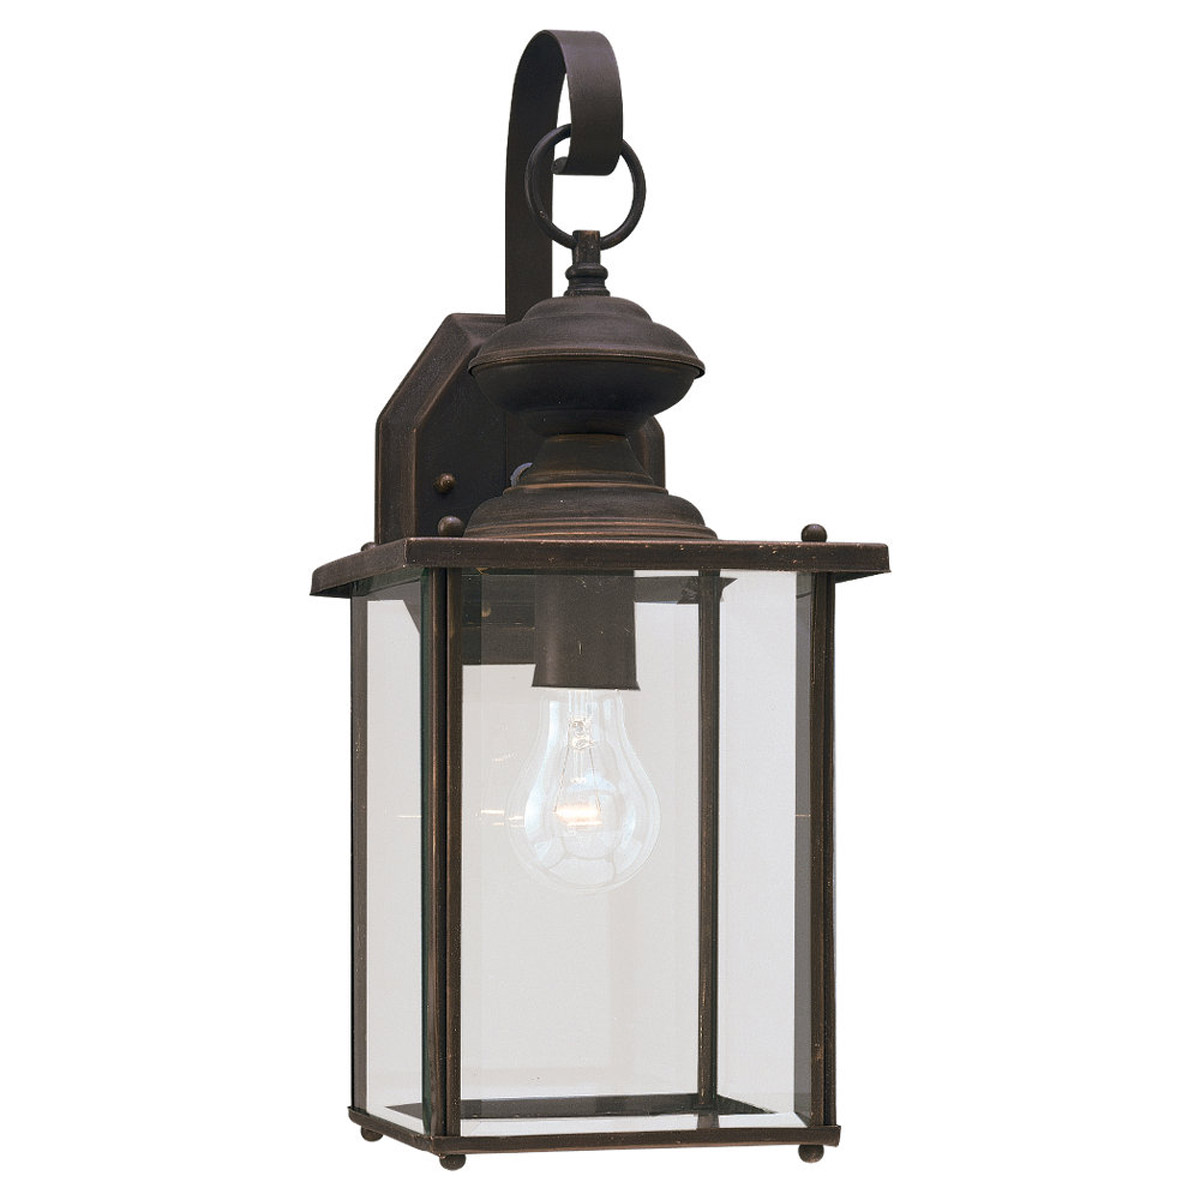 Sea Gull Lighting Jamestowne 1 Light Outdoor Wall Lantern in Antique Bronze 8458-71